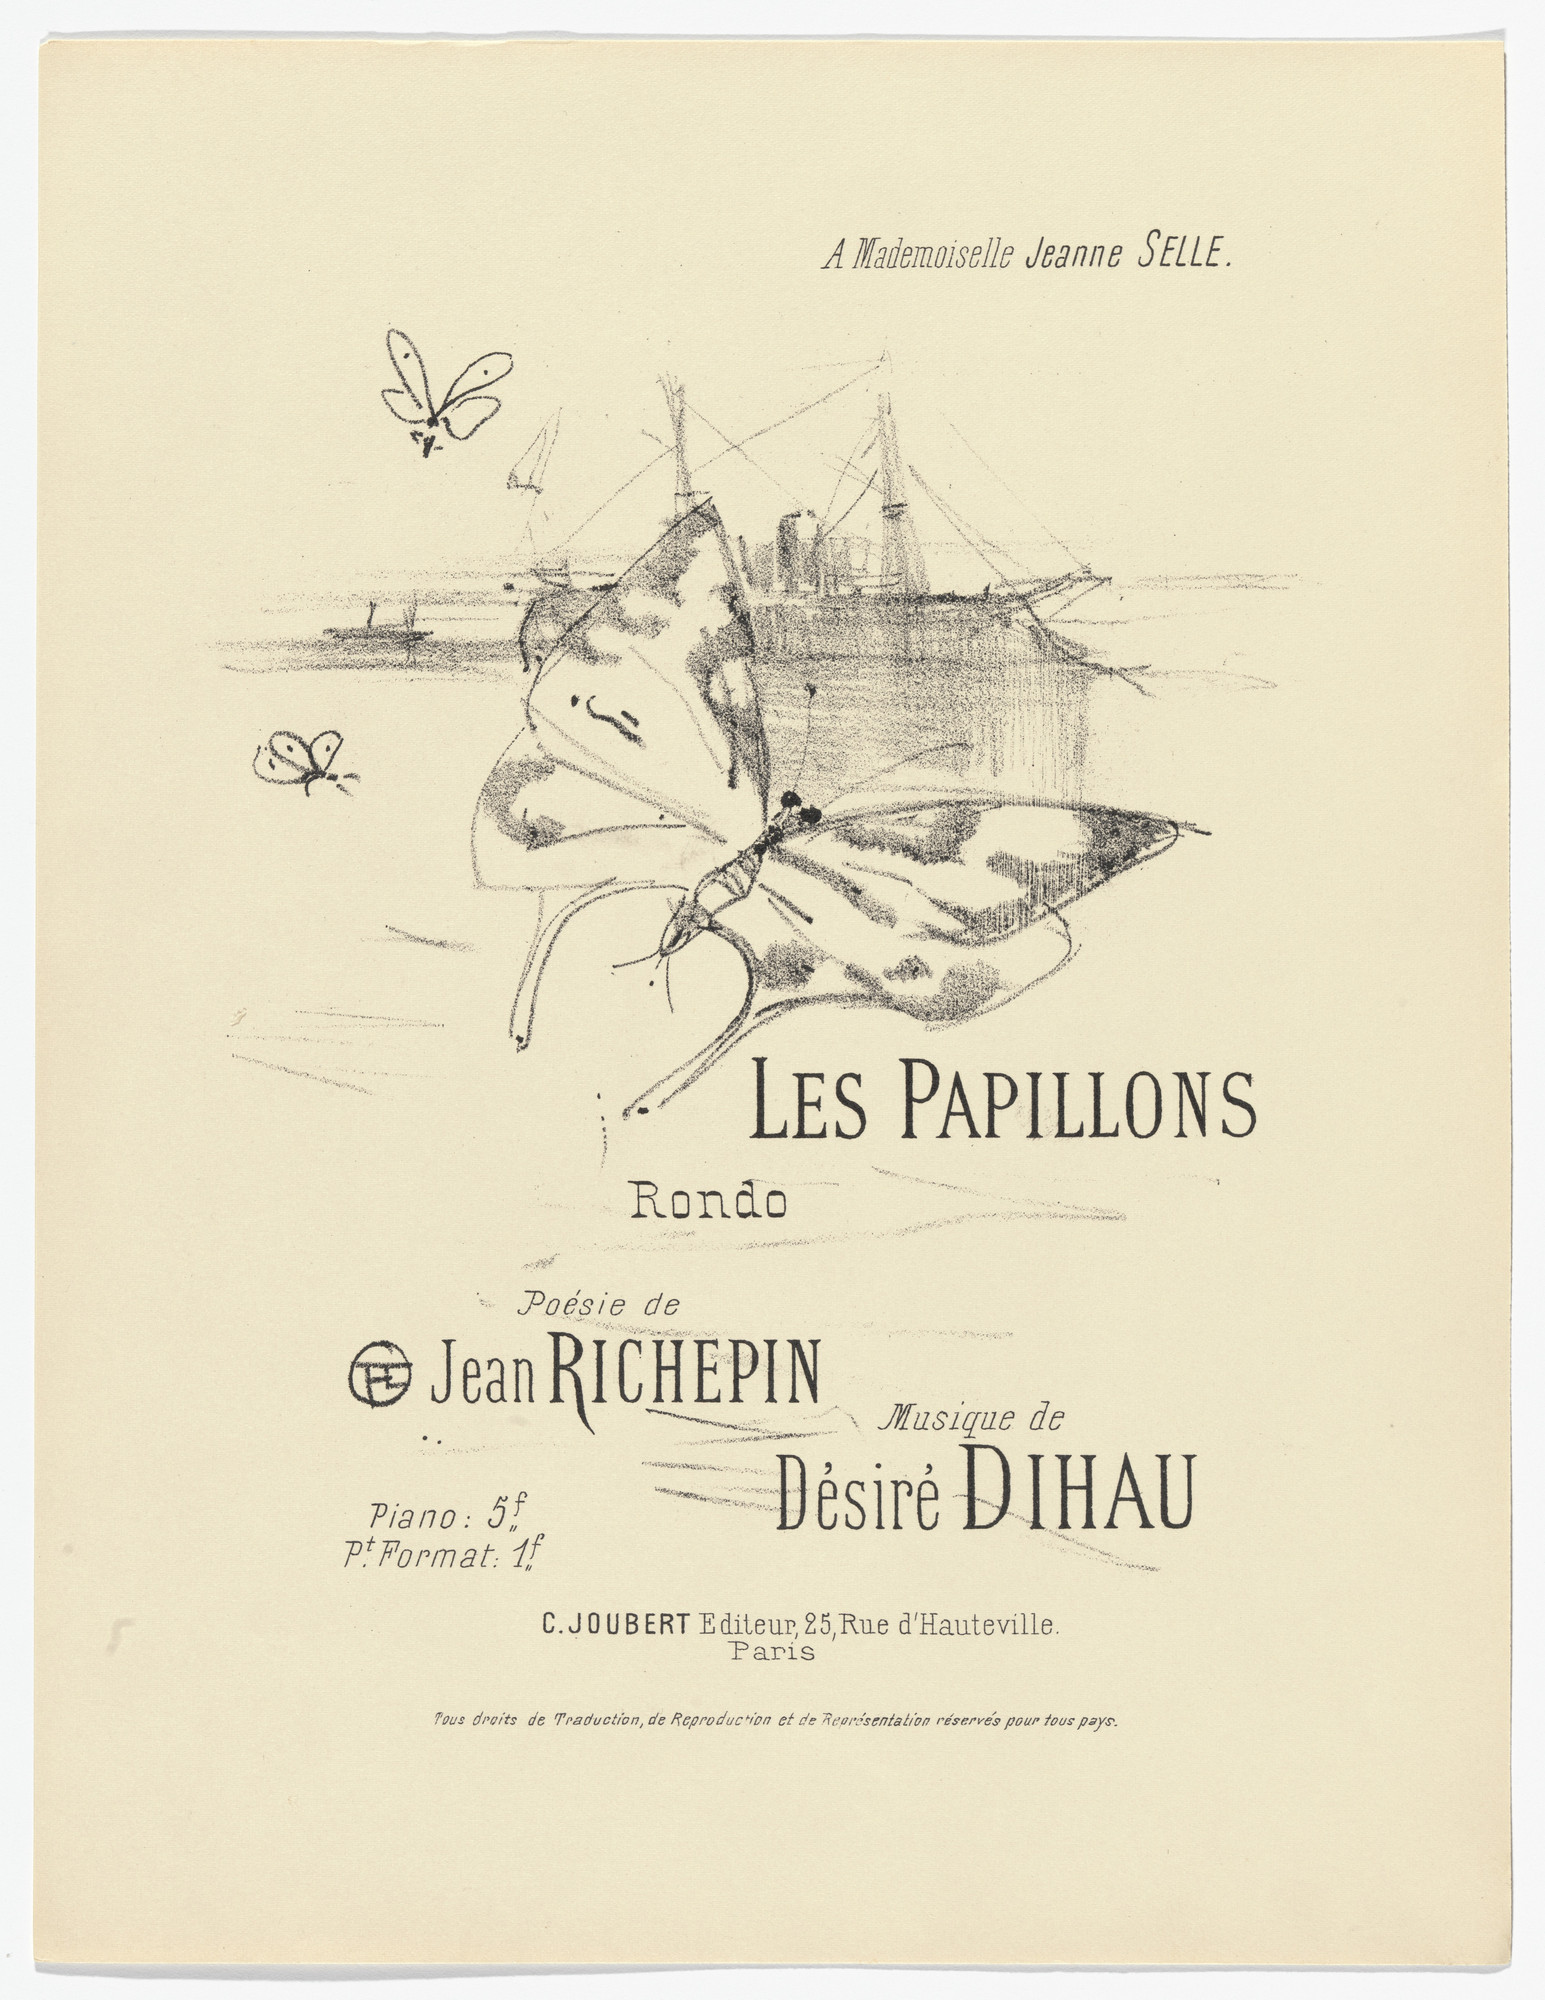 Henri de Toulouse-Lautrec. The Butterflies (Les papillons) from Quatorze lithographies originales (Mélodies de Désiré Dihau). 1895, published 1935